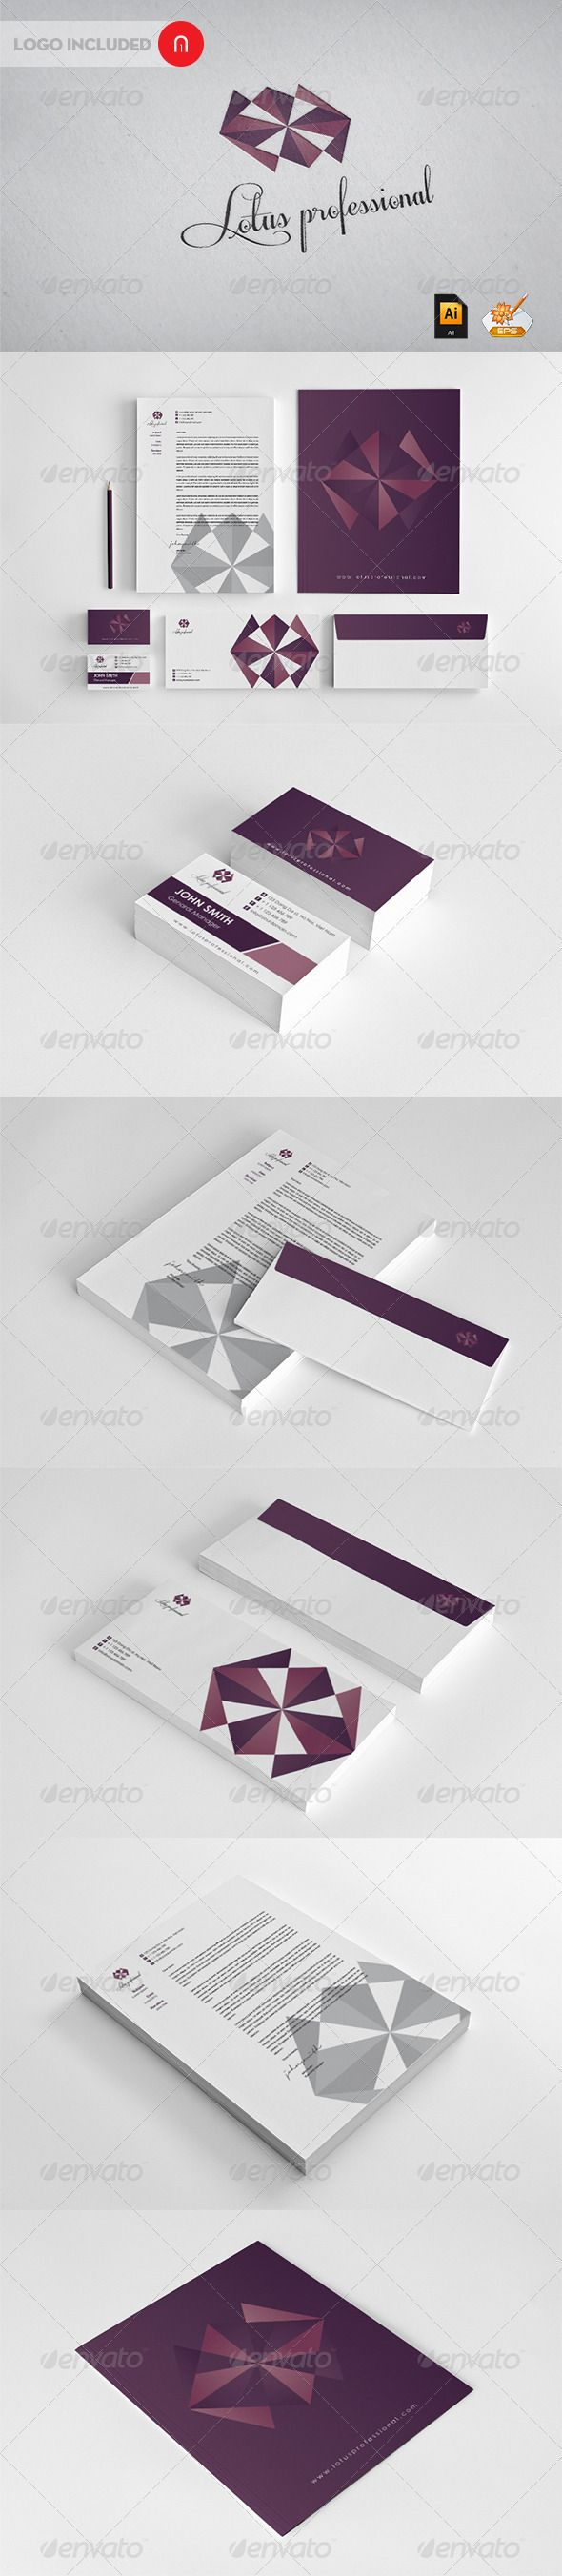 Lotus professional Corporate Identity  #GraphicRiver         Modern Vector Logo 1.Business Card (3.5×2) 2.Letterhead 2 designs 3.Envelope 2 designs 4.Presentation Folder Professional and high quality vector branding graphics and elements included Fully editable Ready for printing!  	 Maybe you can also be interested in these elements            Created: 18July12 GraphicsFilesIncluded: VectorEPS #AIIllustrator Layered: Yes MinimumAdobeCSVersion: CS4 Tags: corporate #identity #lotus…